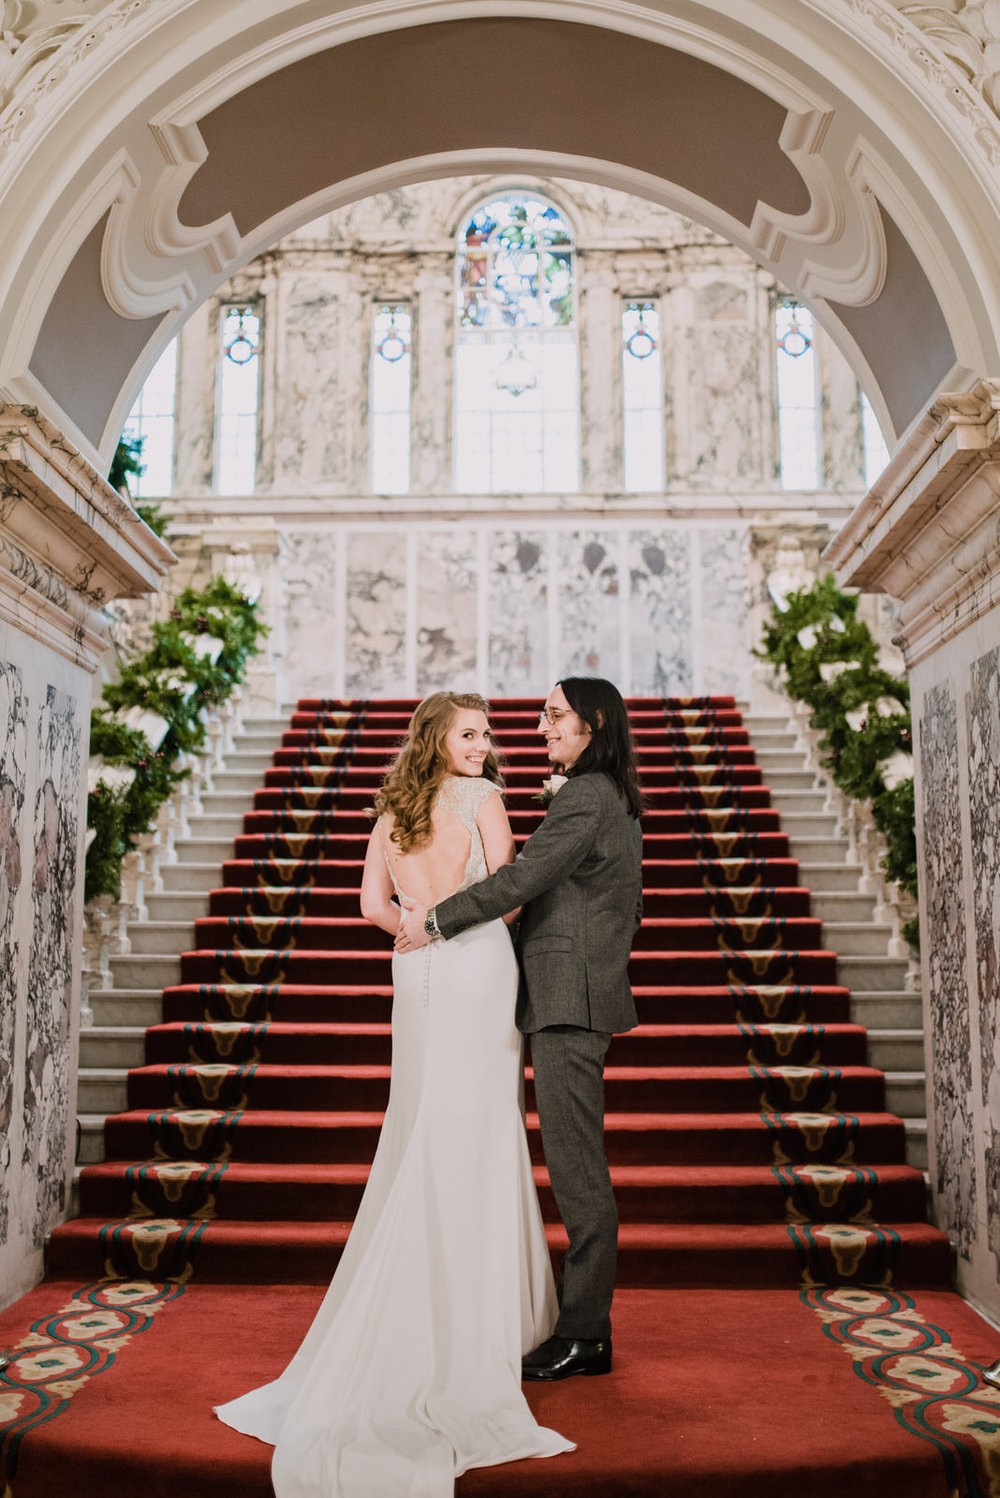 Belfast City Hall Wedding Photographer27.jpg